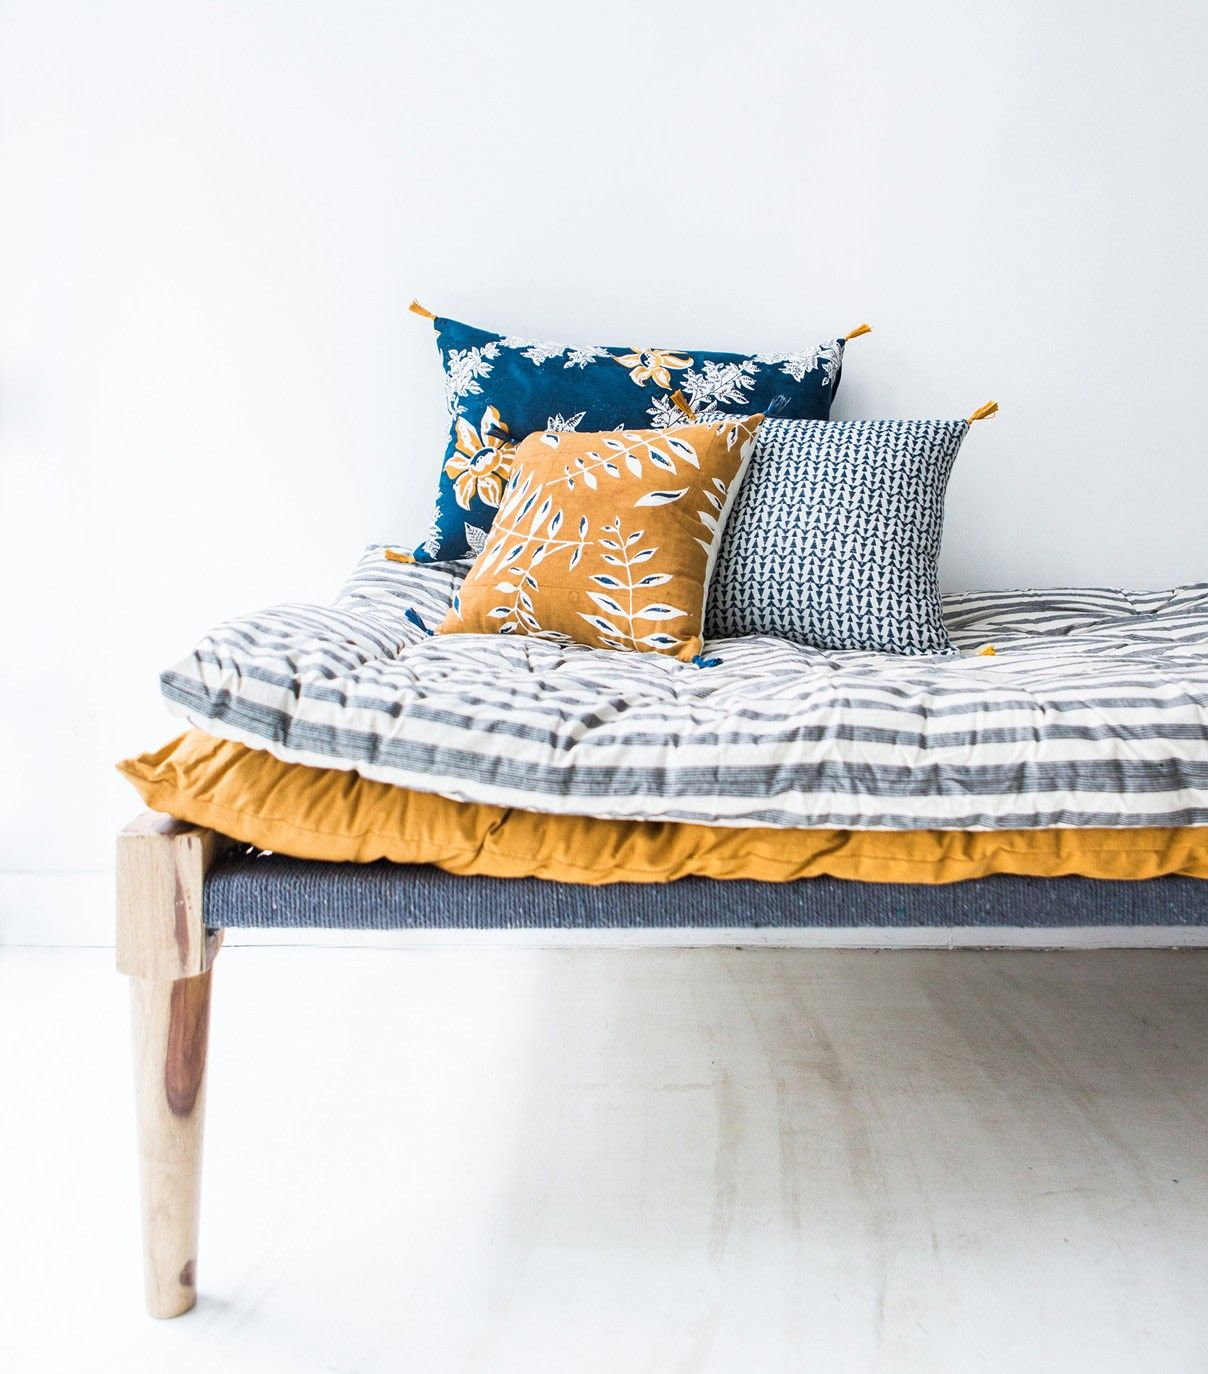 French Vintage Home Goods Shop – Super Marché | Home Goods Throughout French Seamed Sectional Sofas Oblong Mustard (View 5 of 15)